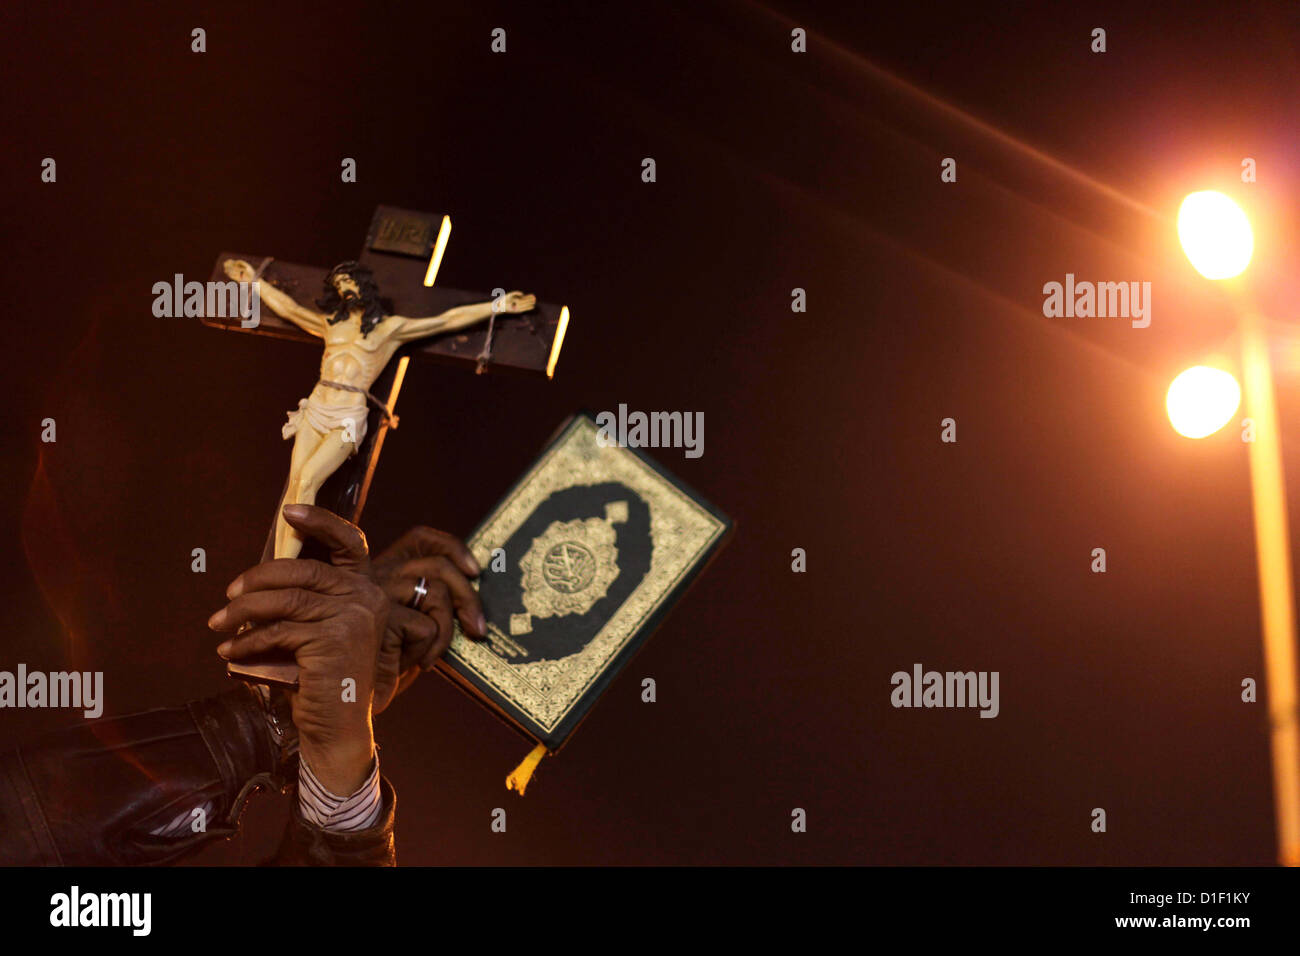 Dec. 18, 2012 - Cairo, Cairo, Egypt - A man holds a copy of the Koran and a cross as she shouts slogans during a Stock Photo